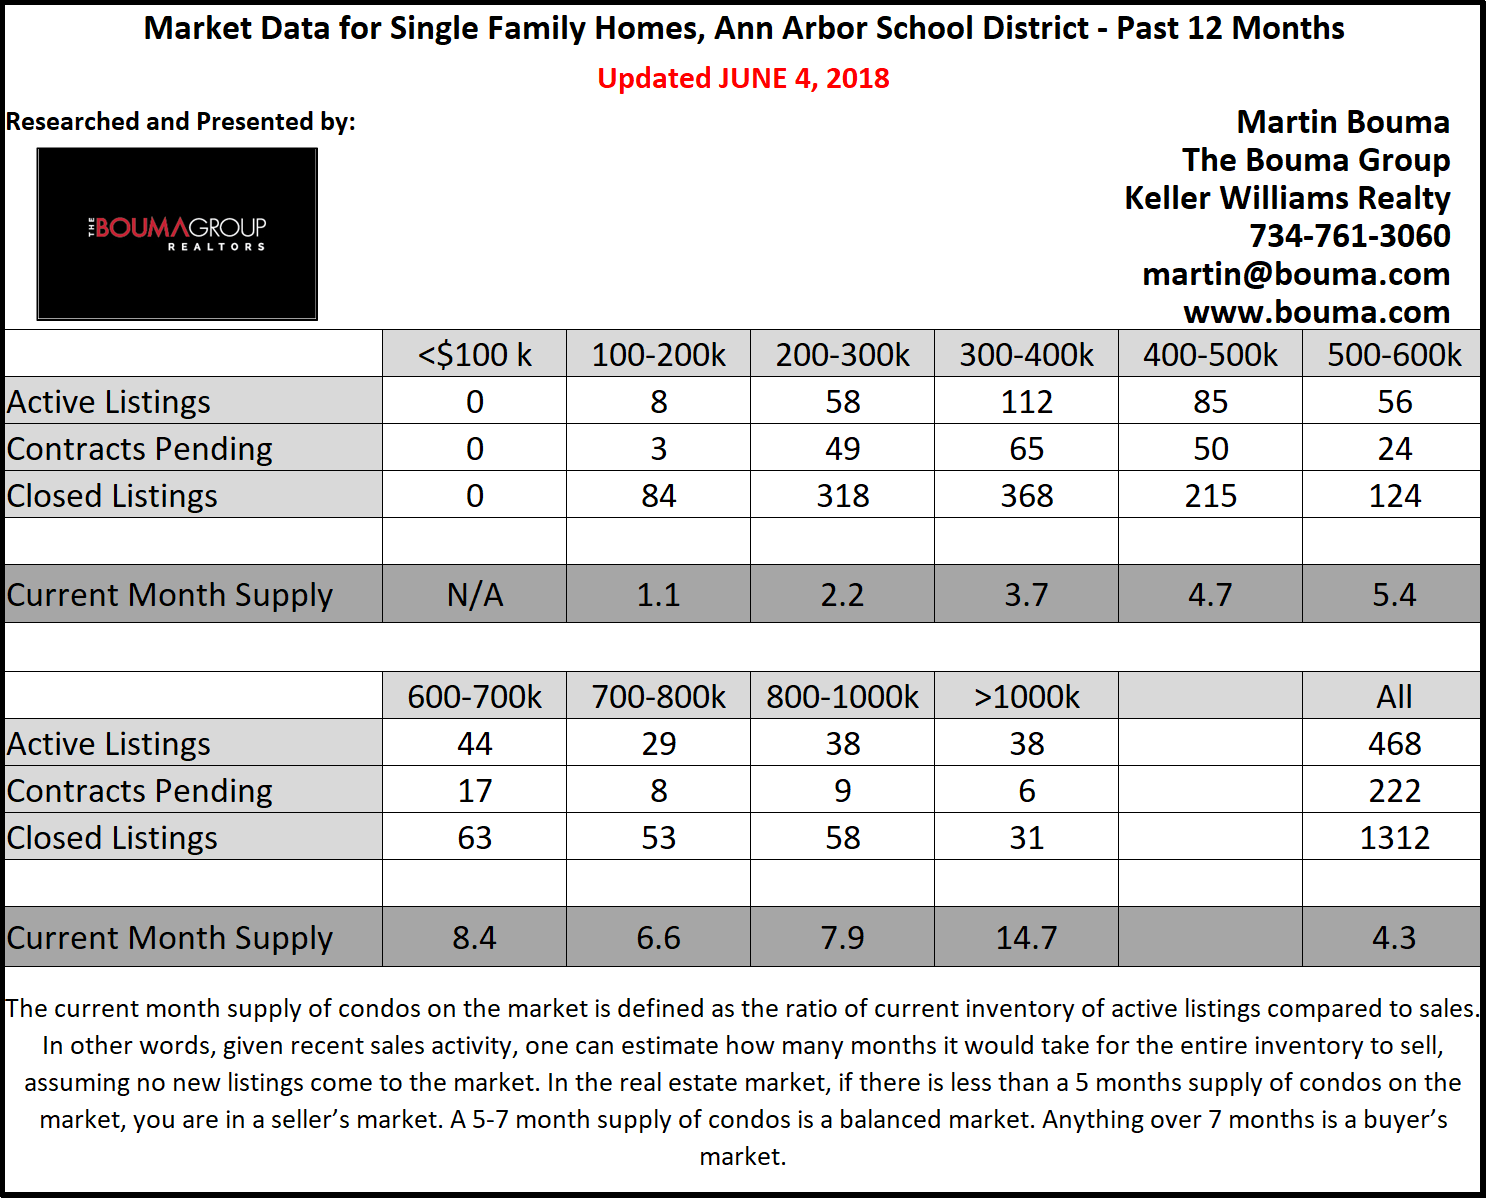 Ann Arbor Residential Real Estate Report for May